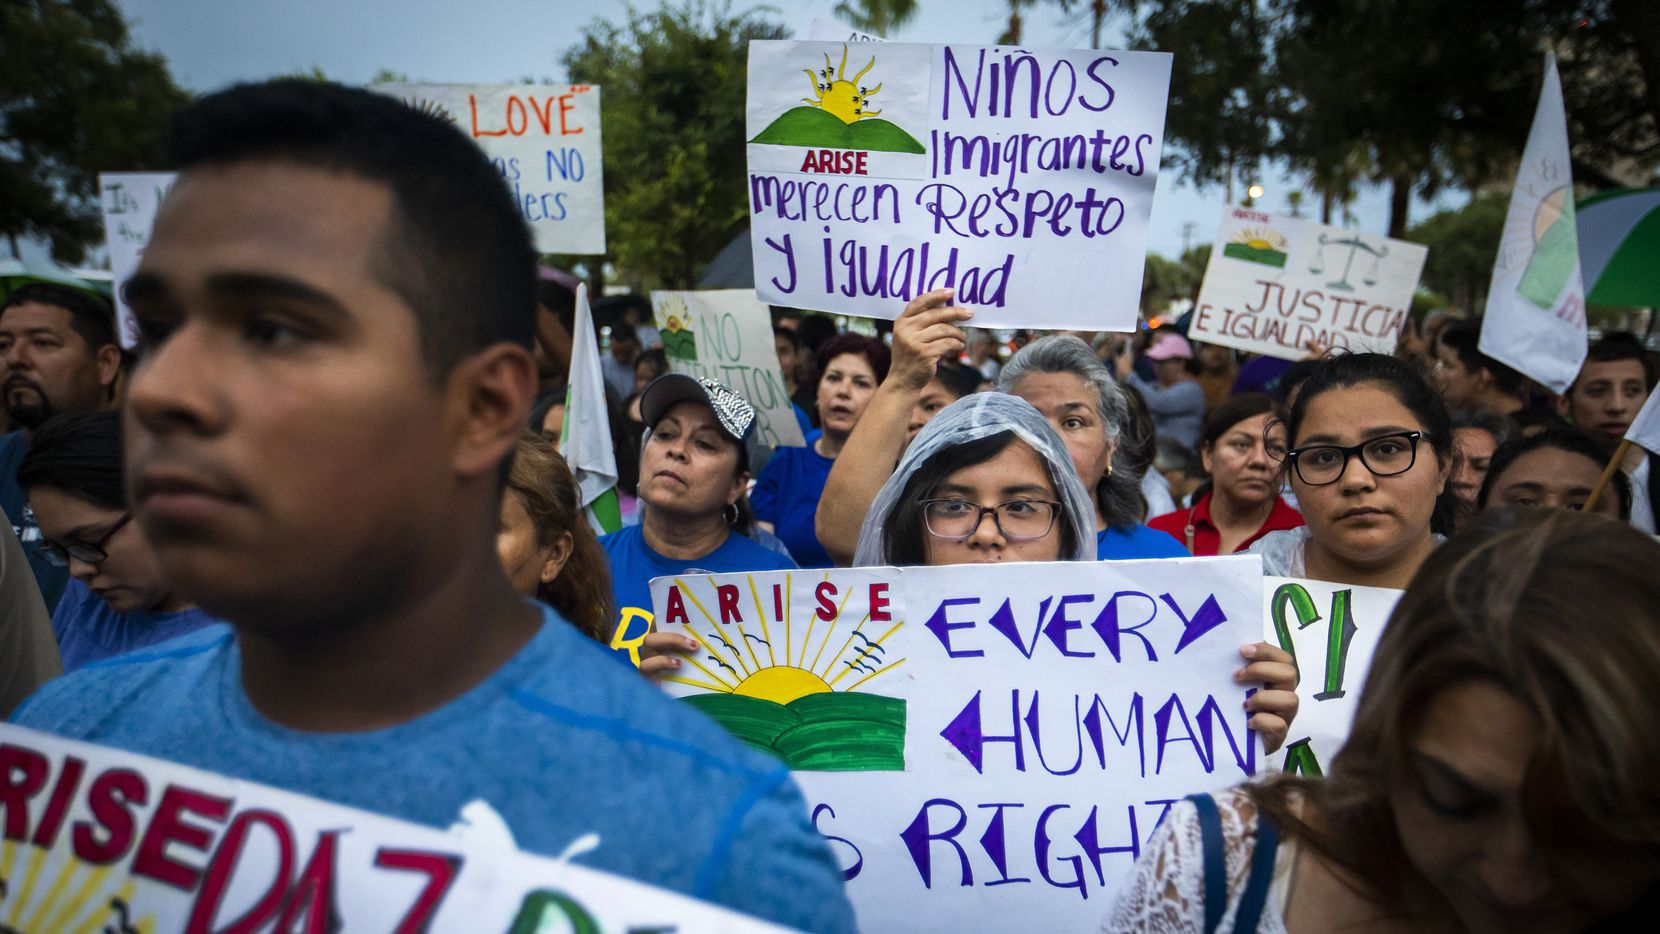 People hold signs in support of immigrants during an interfaith prayer vigil and walk for migrant families.